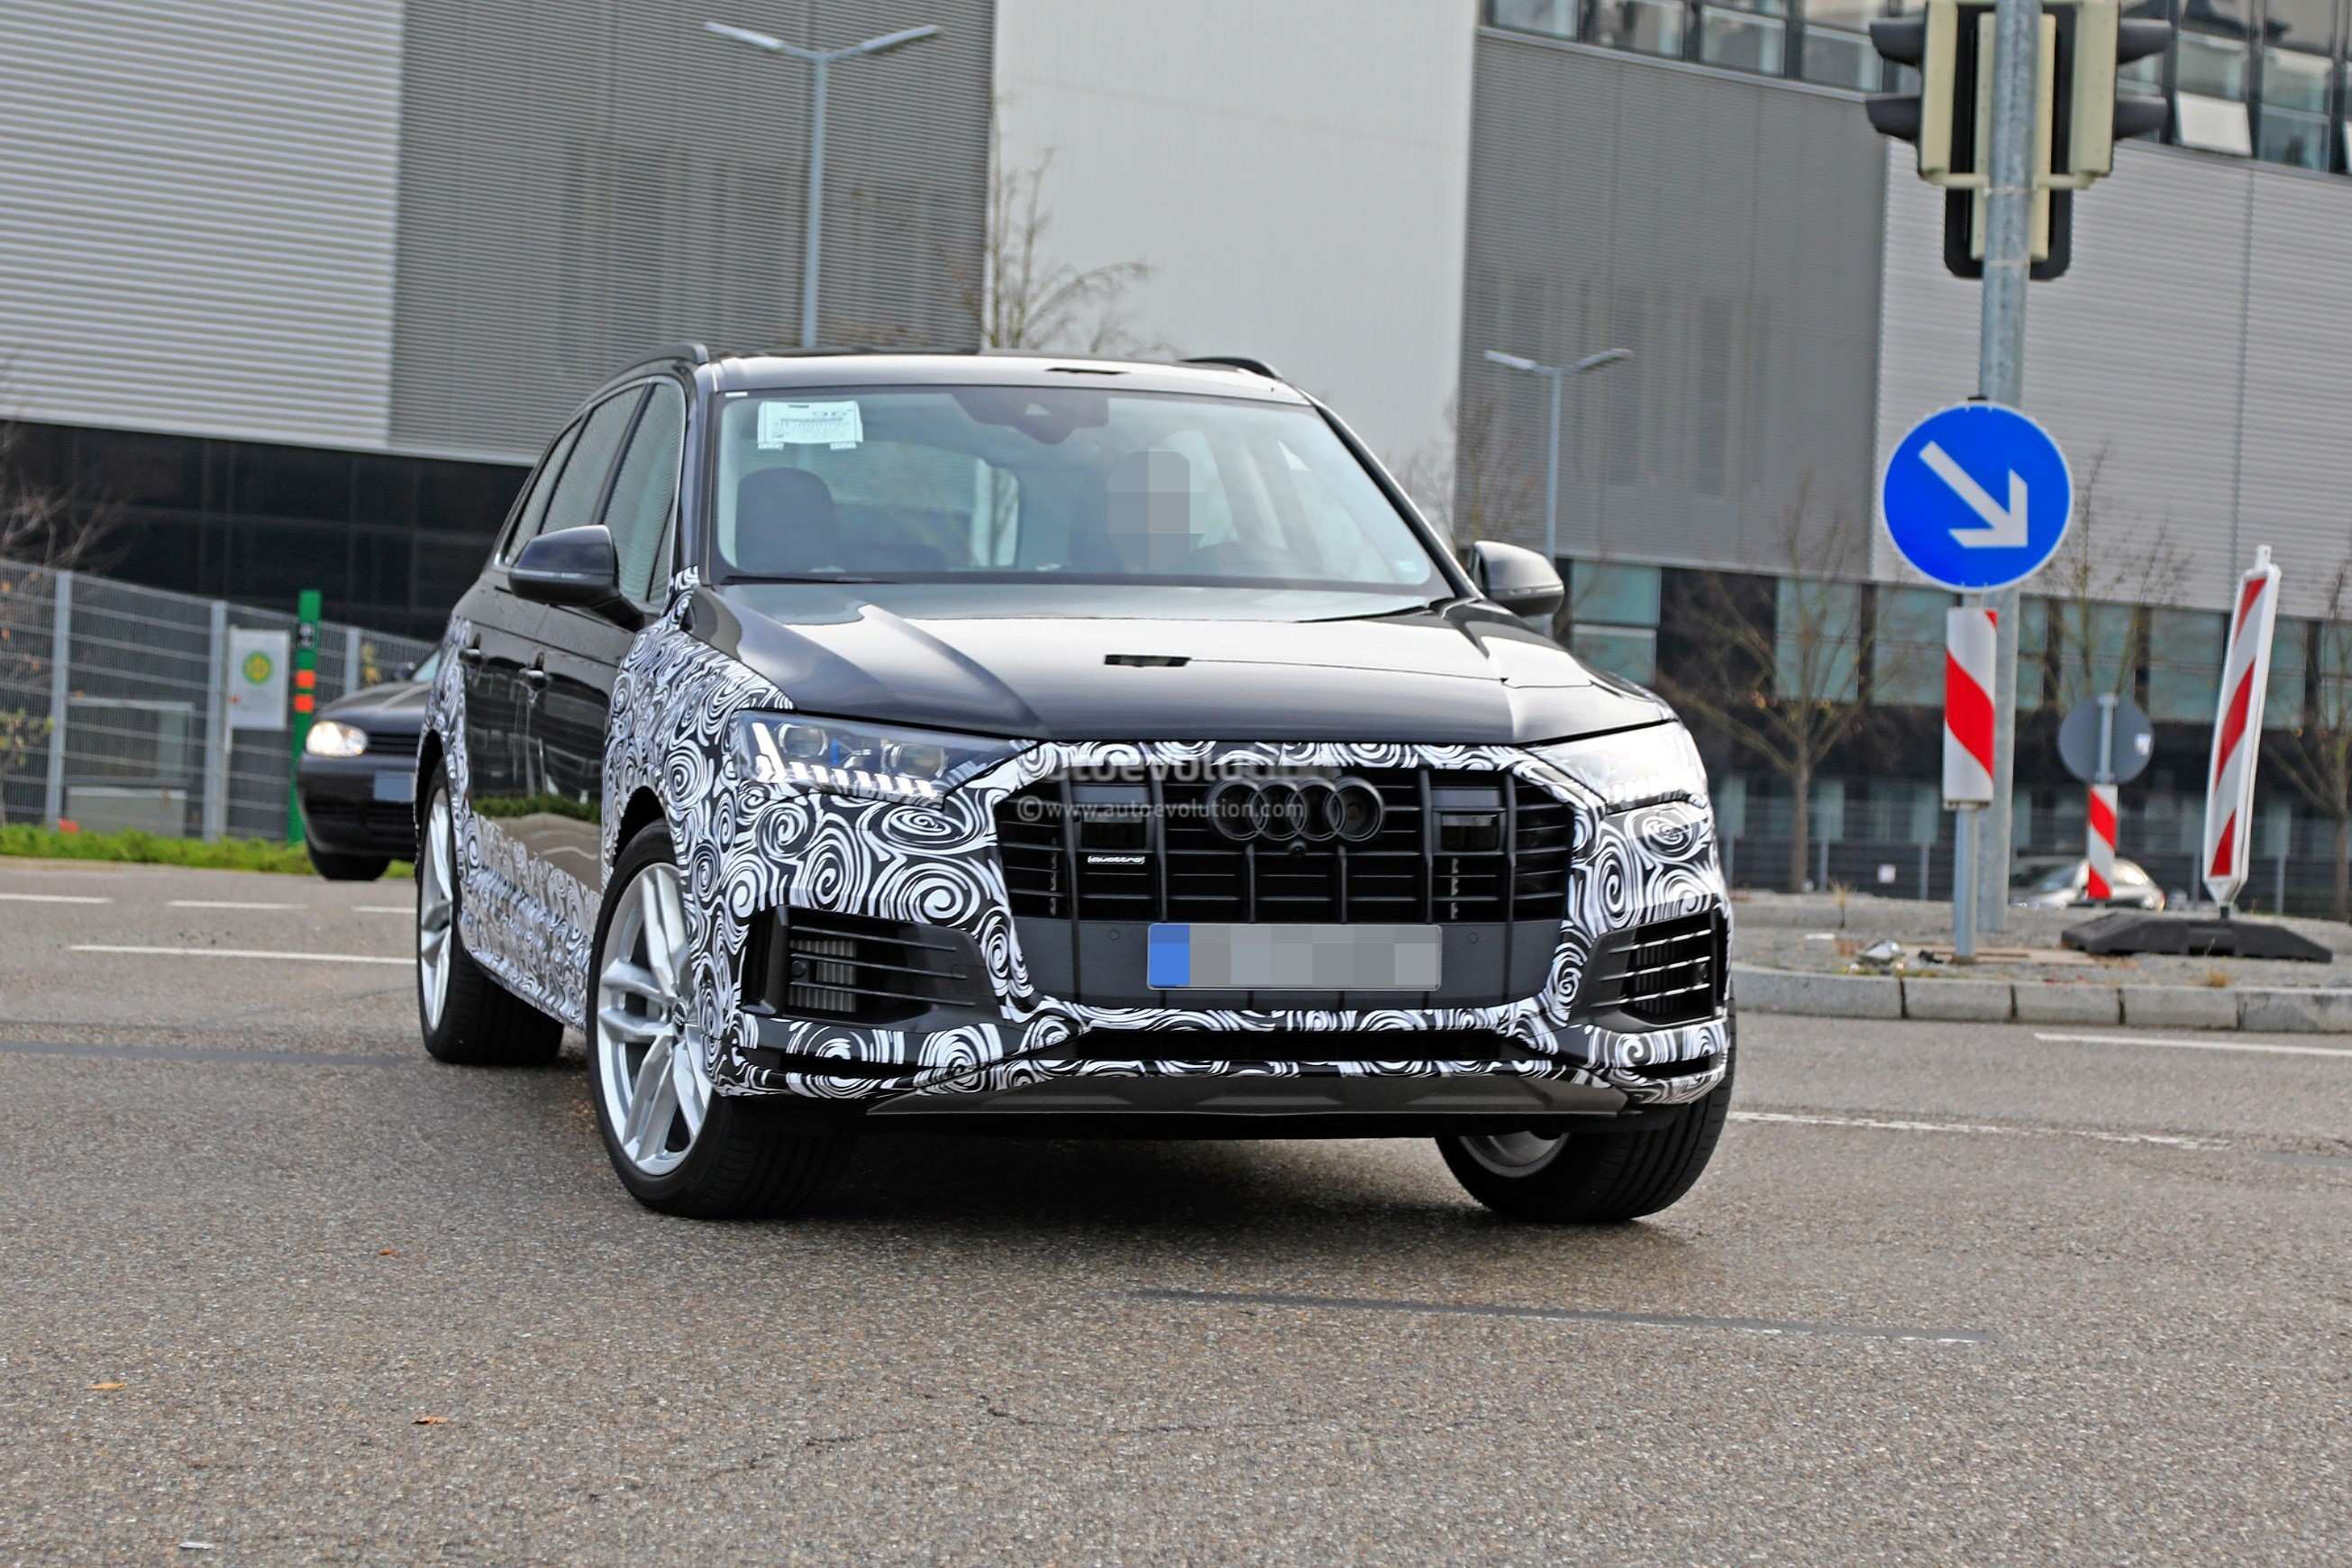 93 New Audi Q7 2020 Facelift Release Date